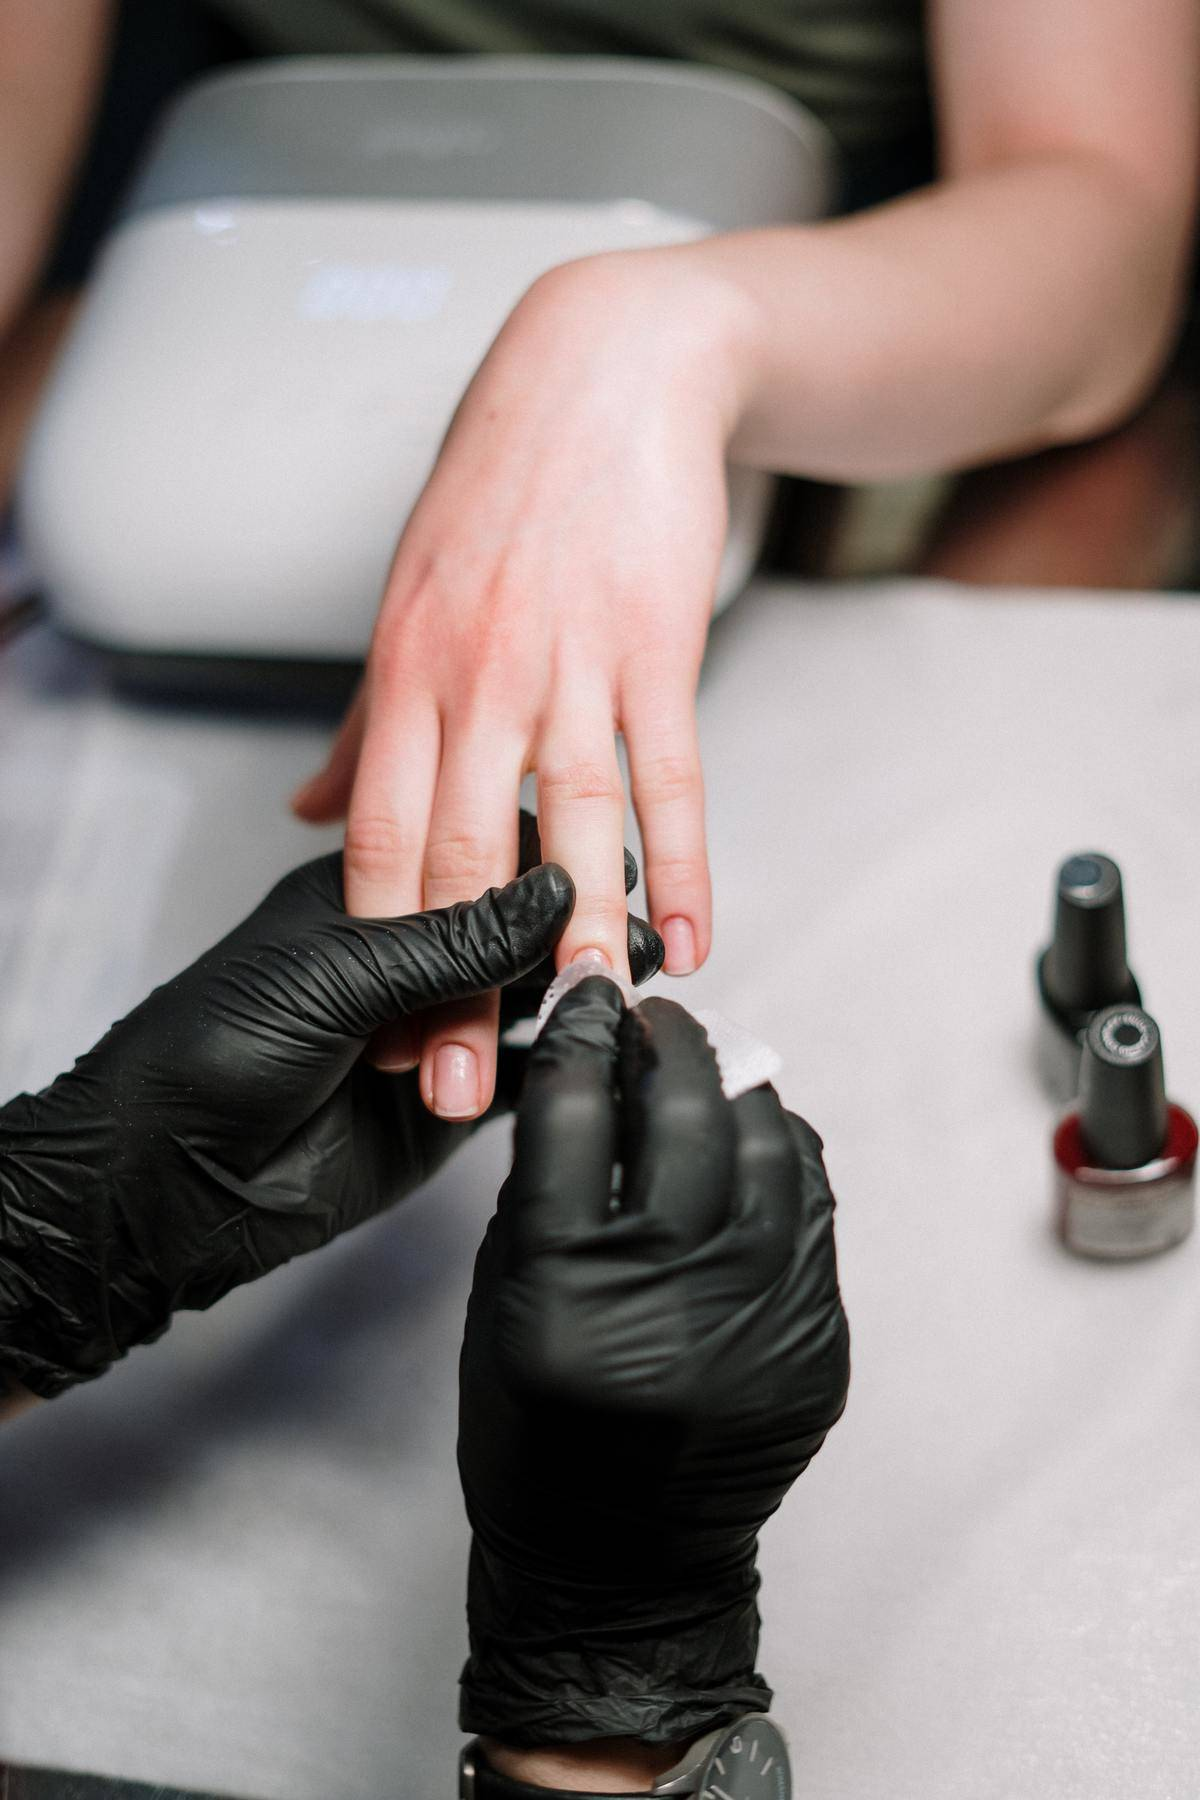 person getting their nails doned